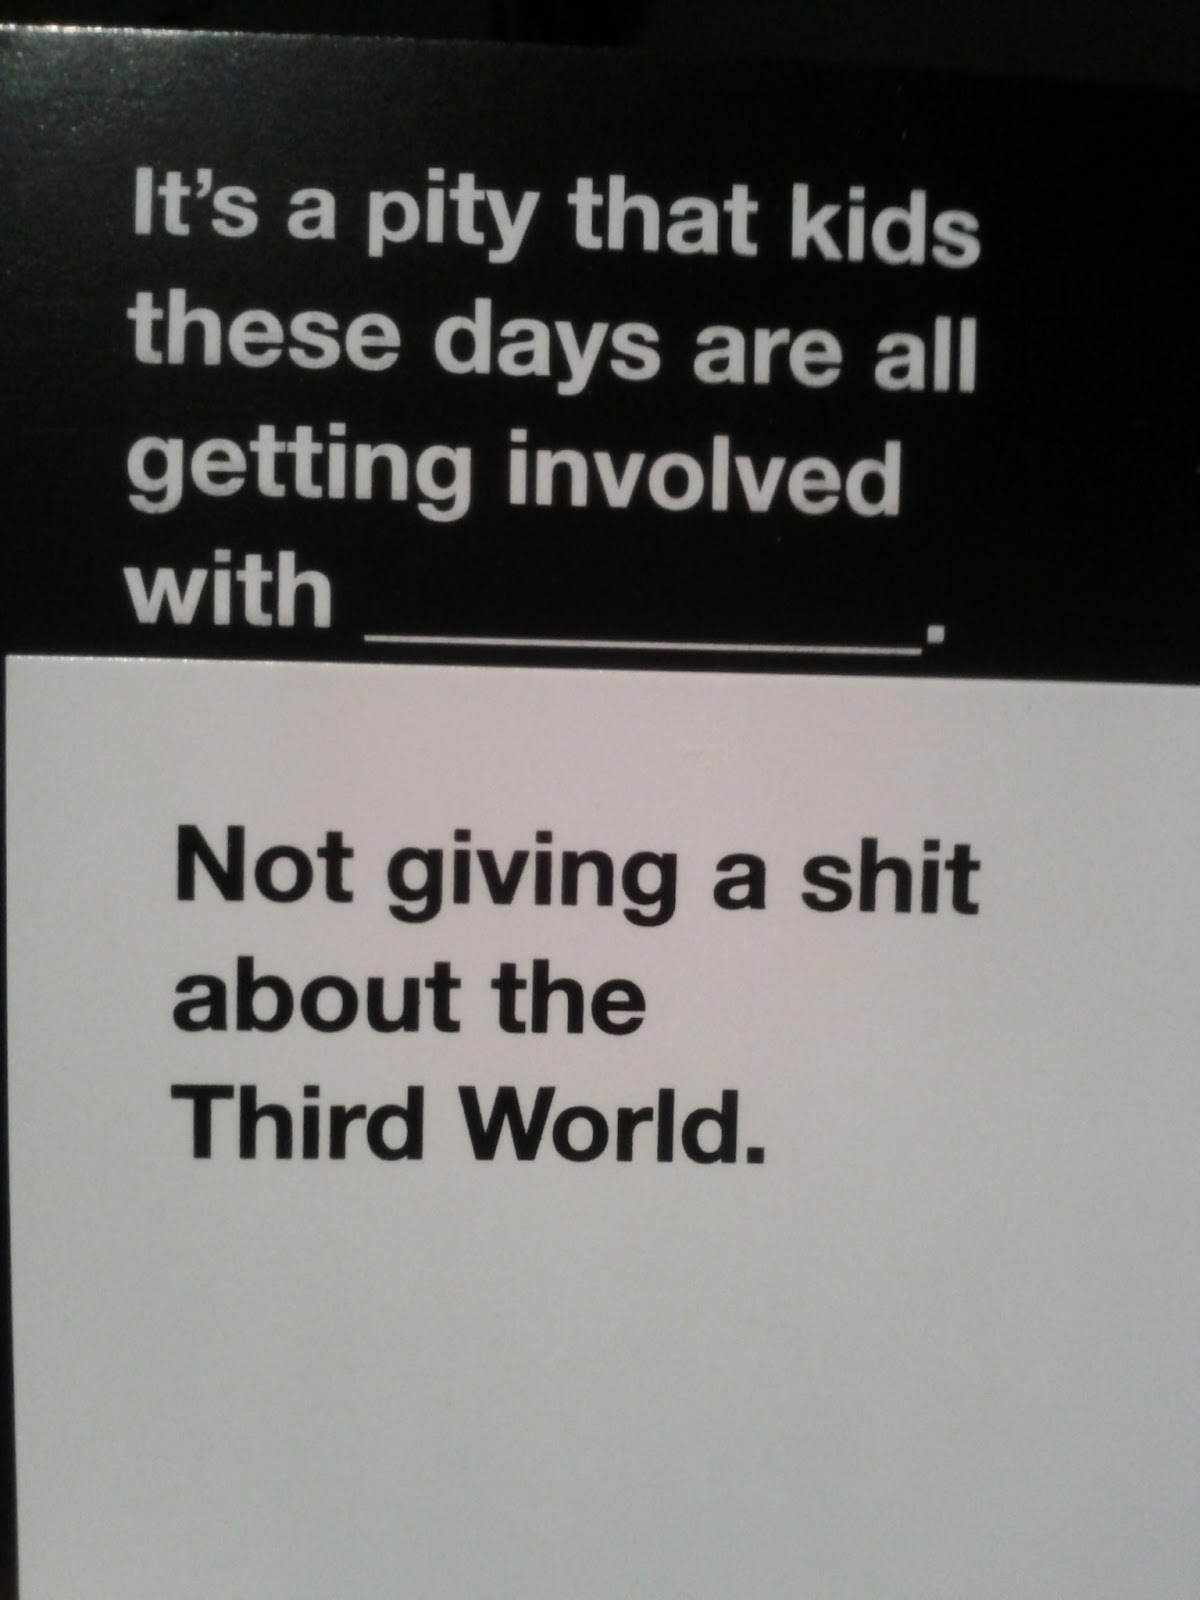 7fb image 679289] cards against humanity know your meme